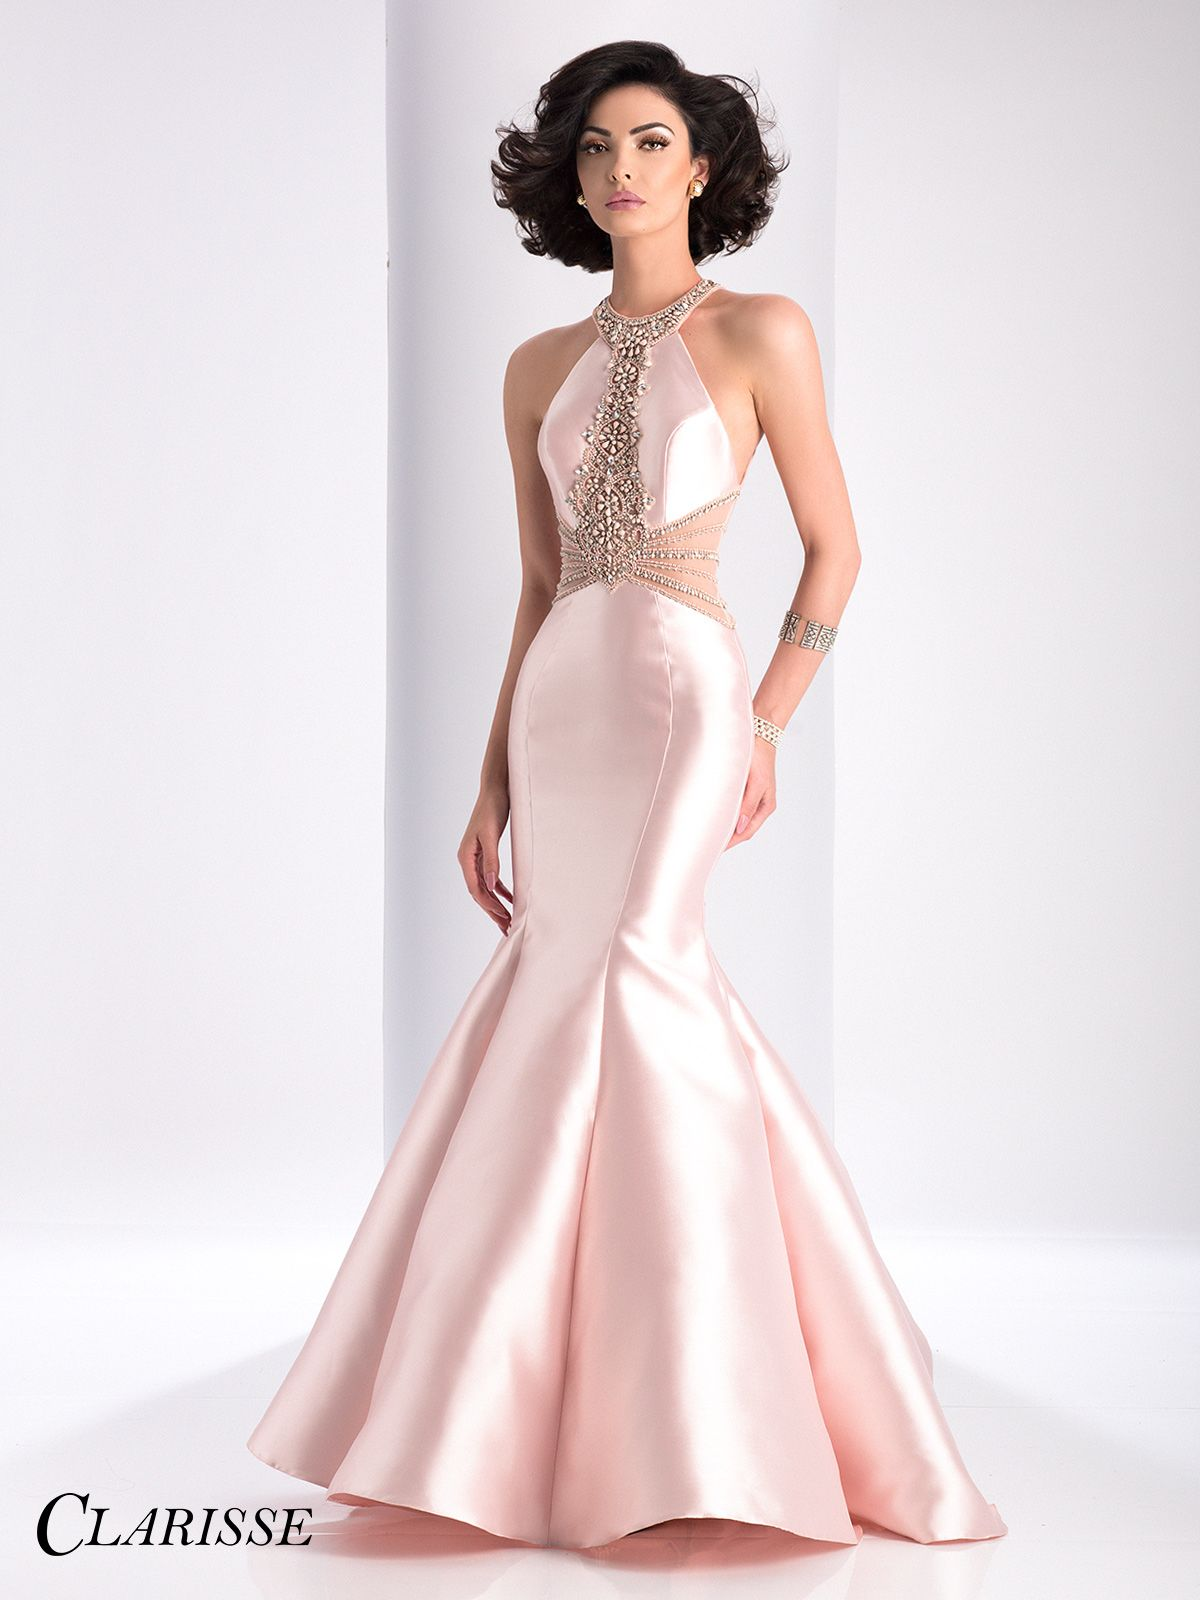 e5d44dde53e Clarisse Beaded Blush Pink Mermaid Prom Dress 3139